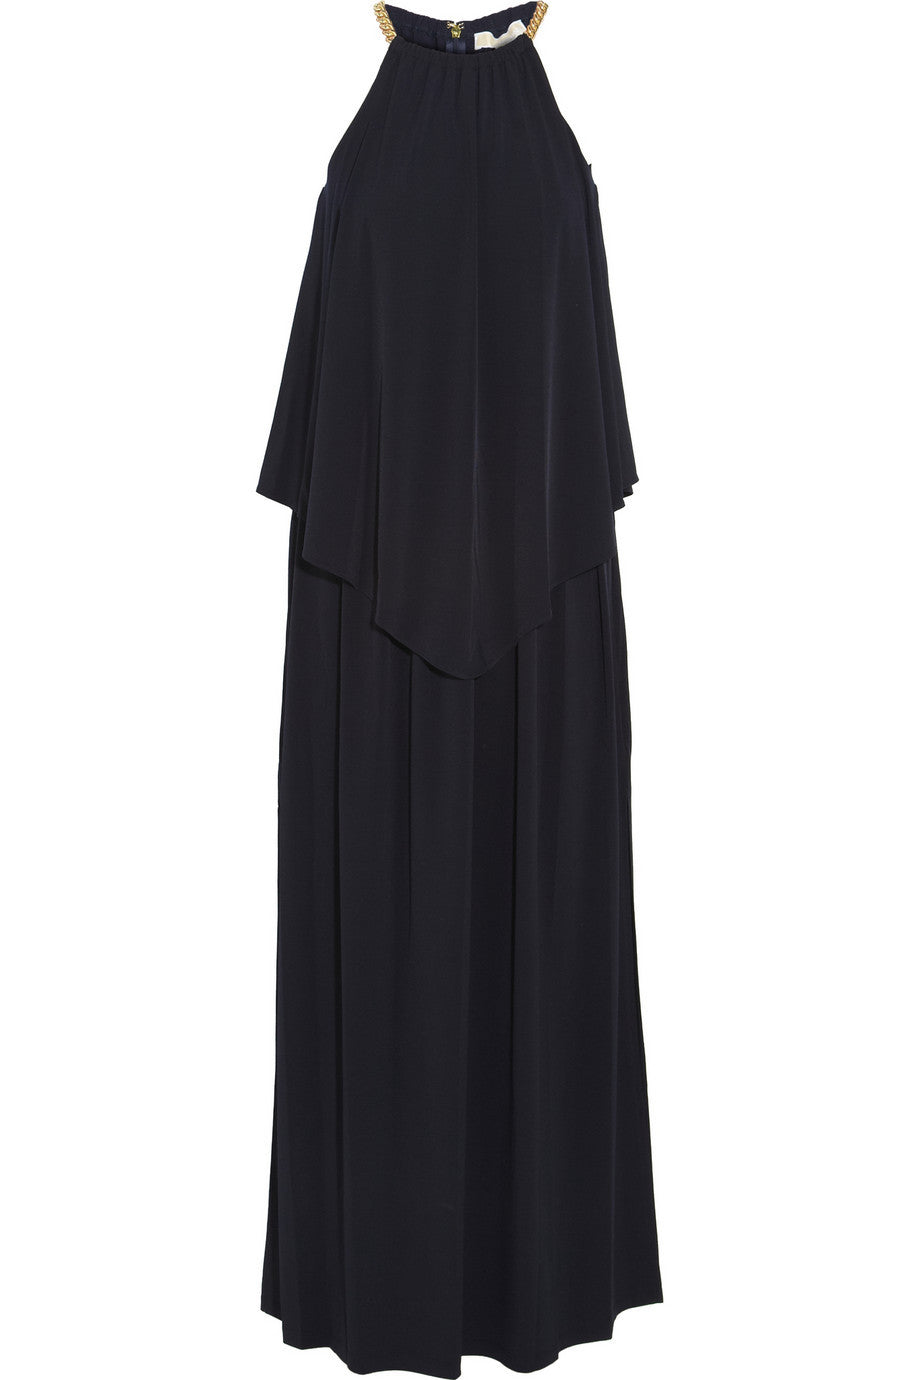 MICHAEL By Michael Kors Chain Detail Navy Jersey Maxi Dress / Sz S - Style Therapy  - 1